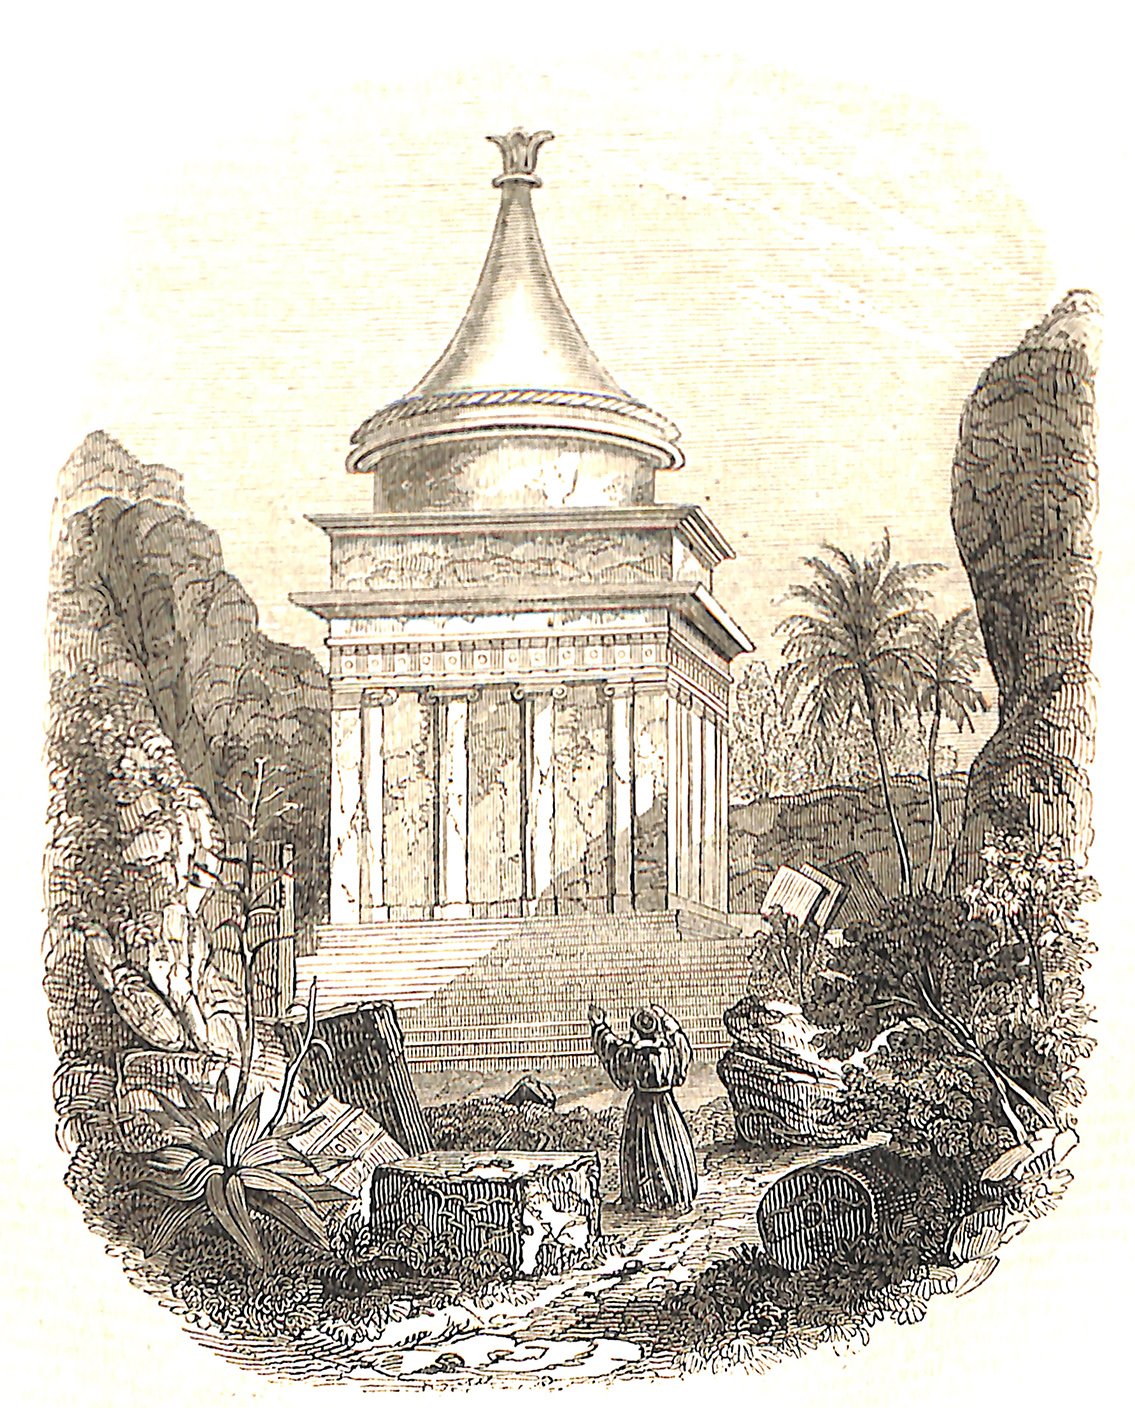 Absalom's Tomb. - From Cassas